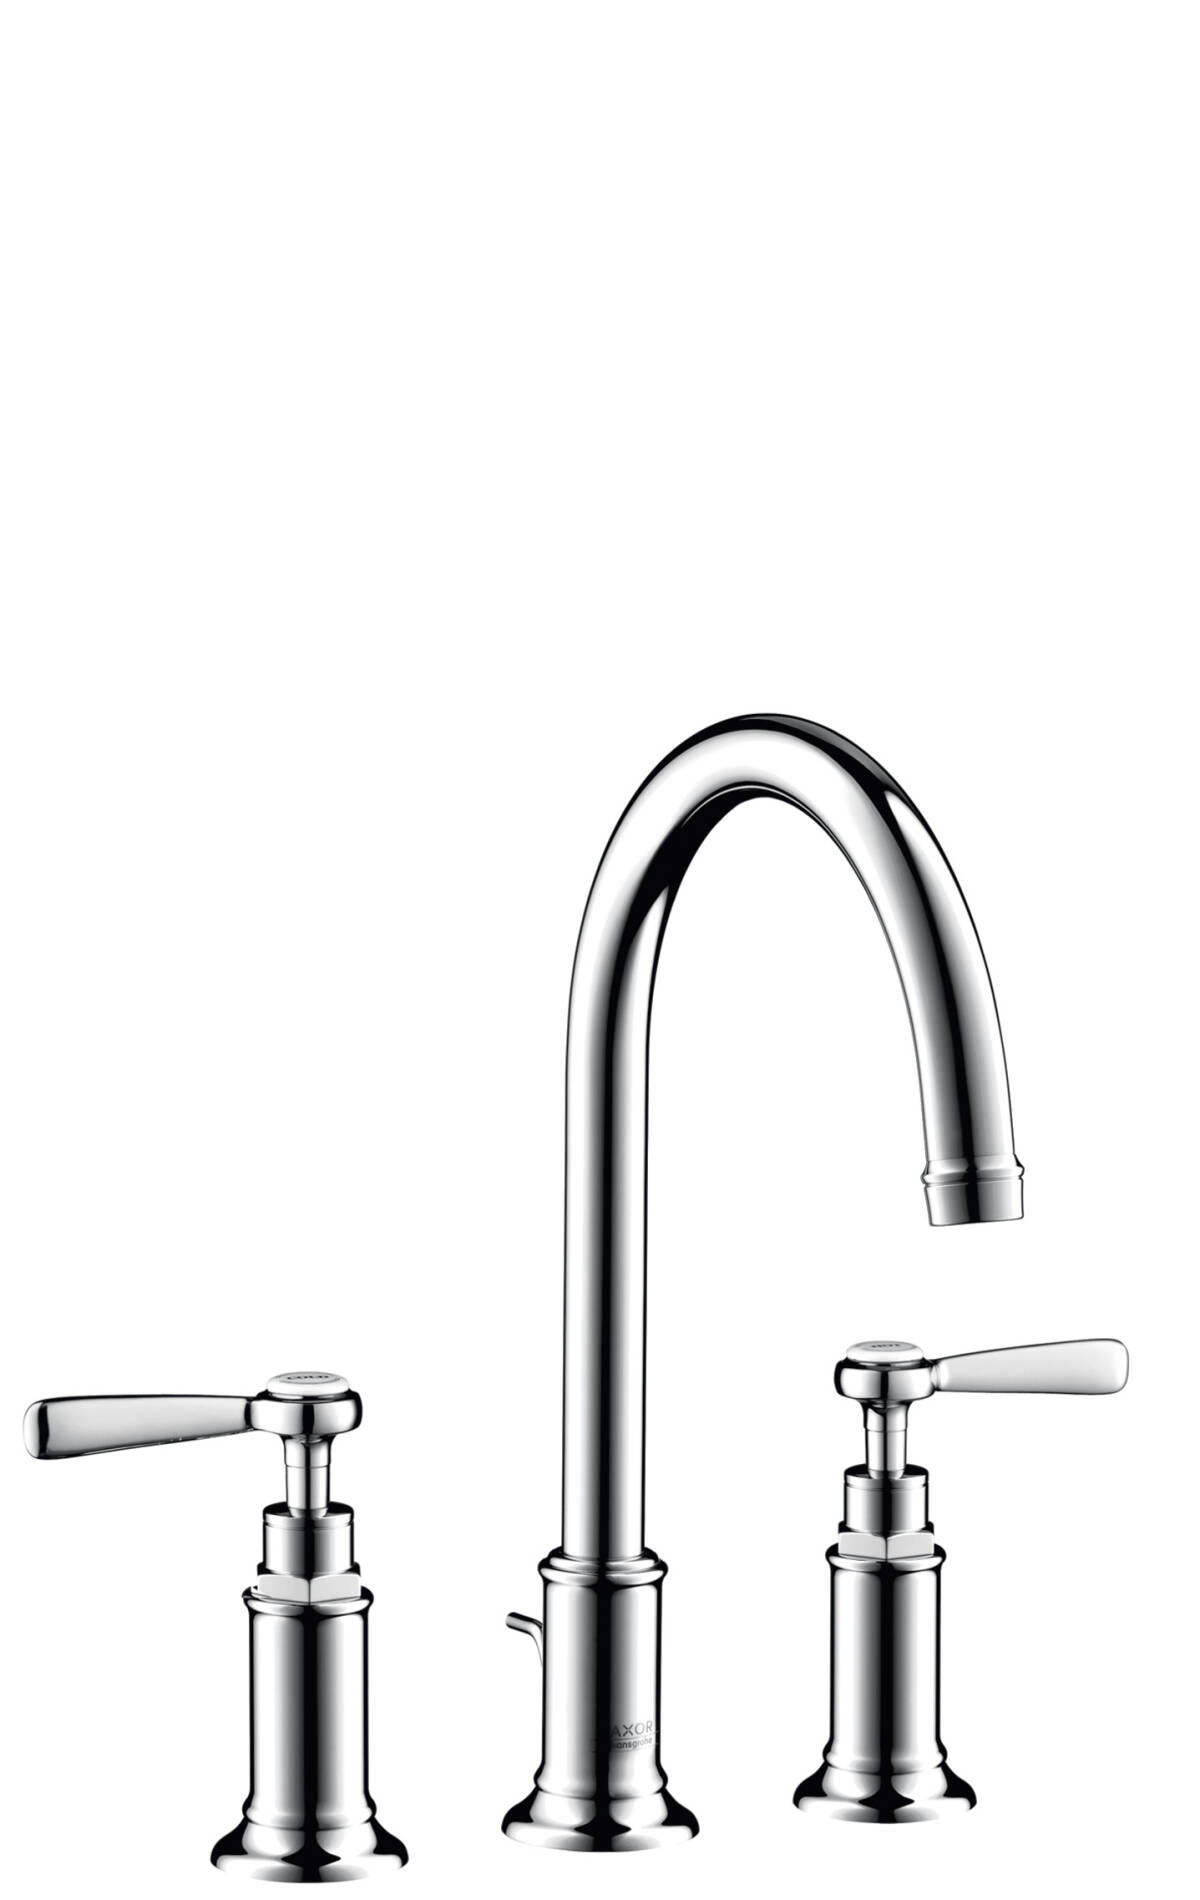 3-hole basin mixer 180 with lever handles and pop-up waste set, Brushed Chrome, 16514260